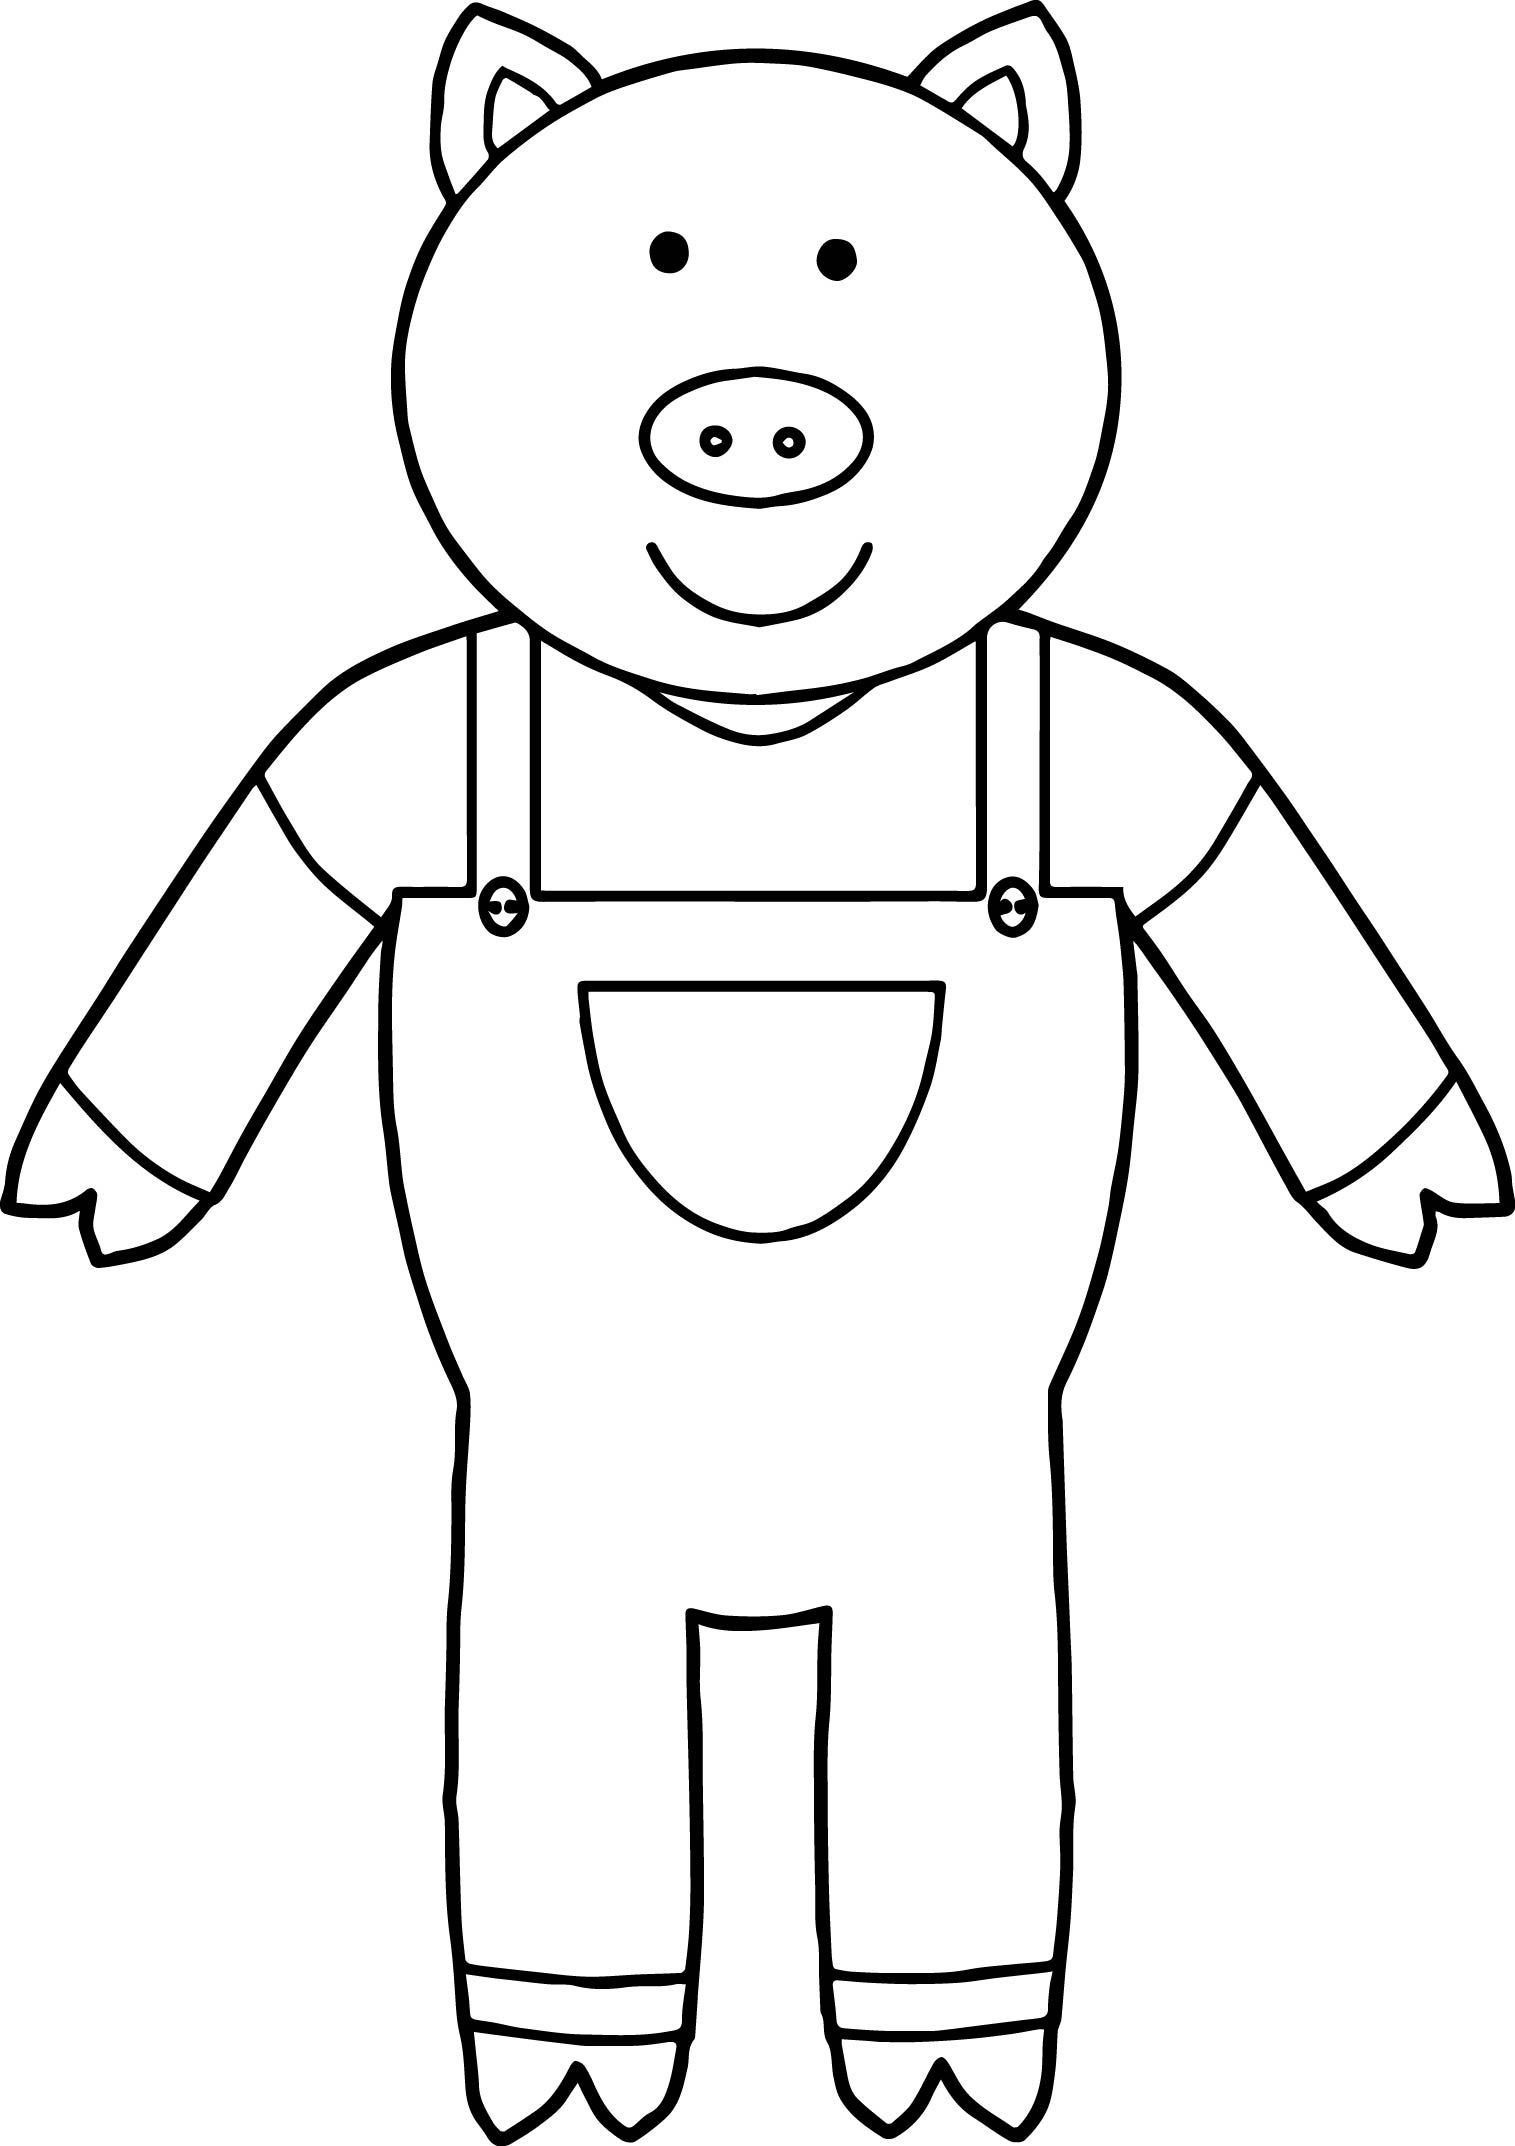 Cool One 3 Little Pigs Coloring Page Little Pigs Coloring Pages